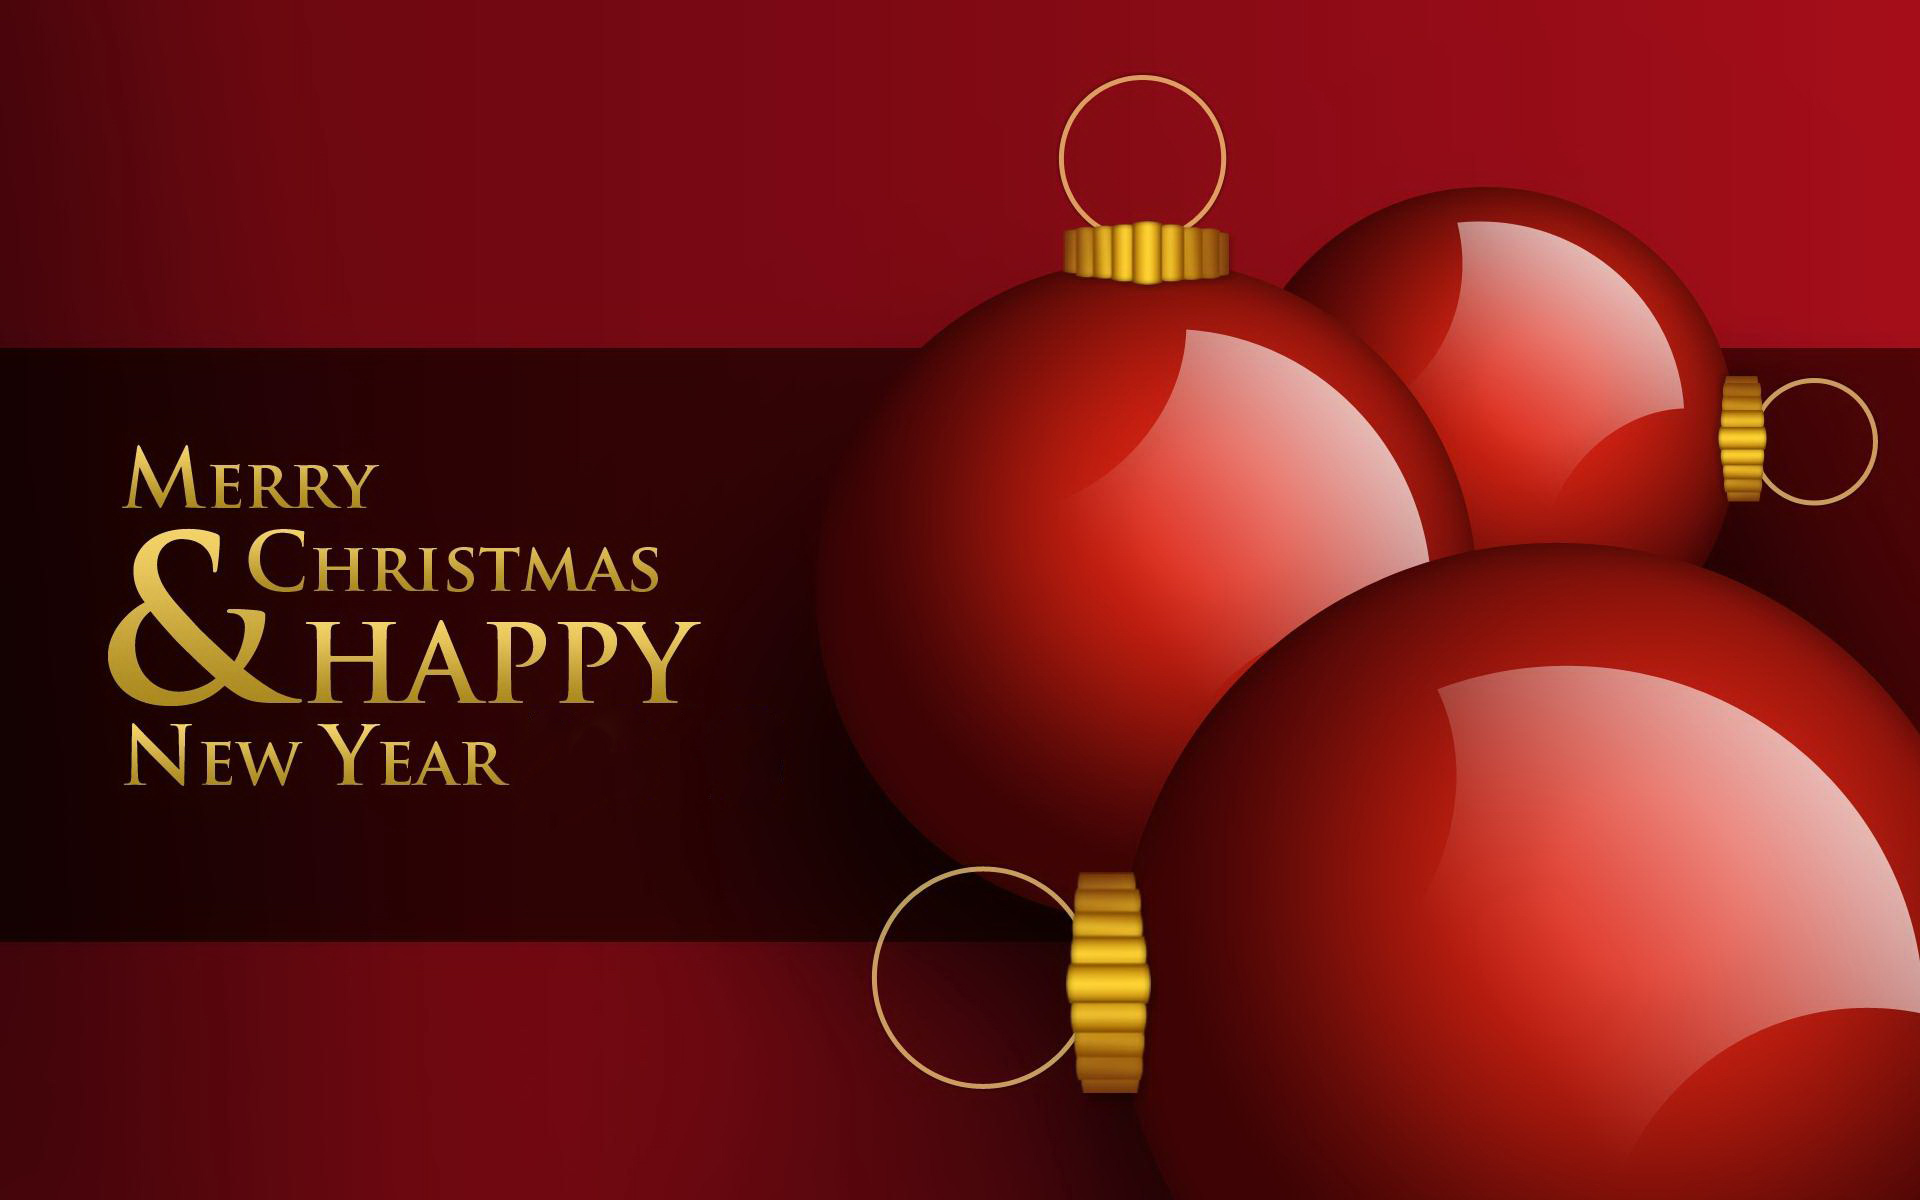 Merry Christmas and Happy New Year 2015 Wallpaper 1920x1200